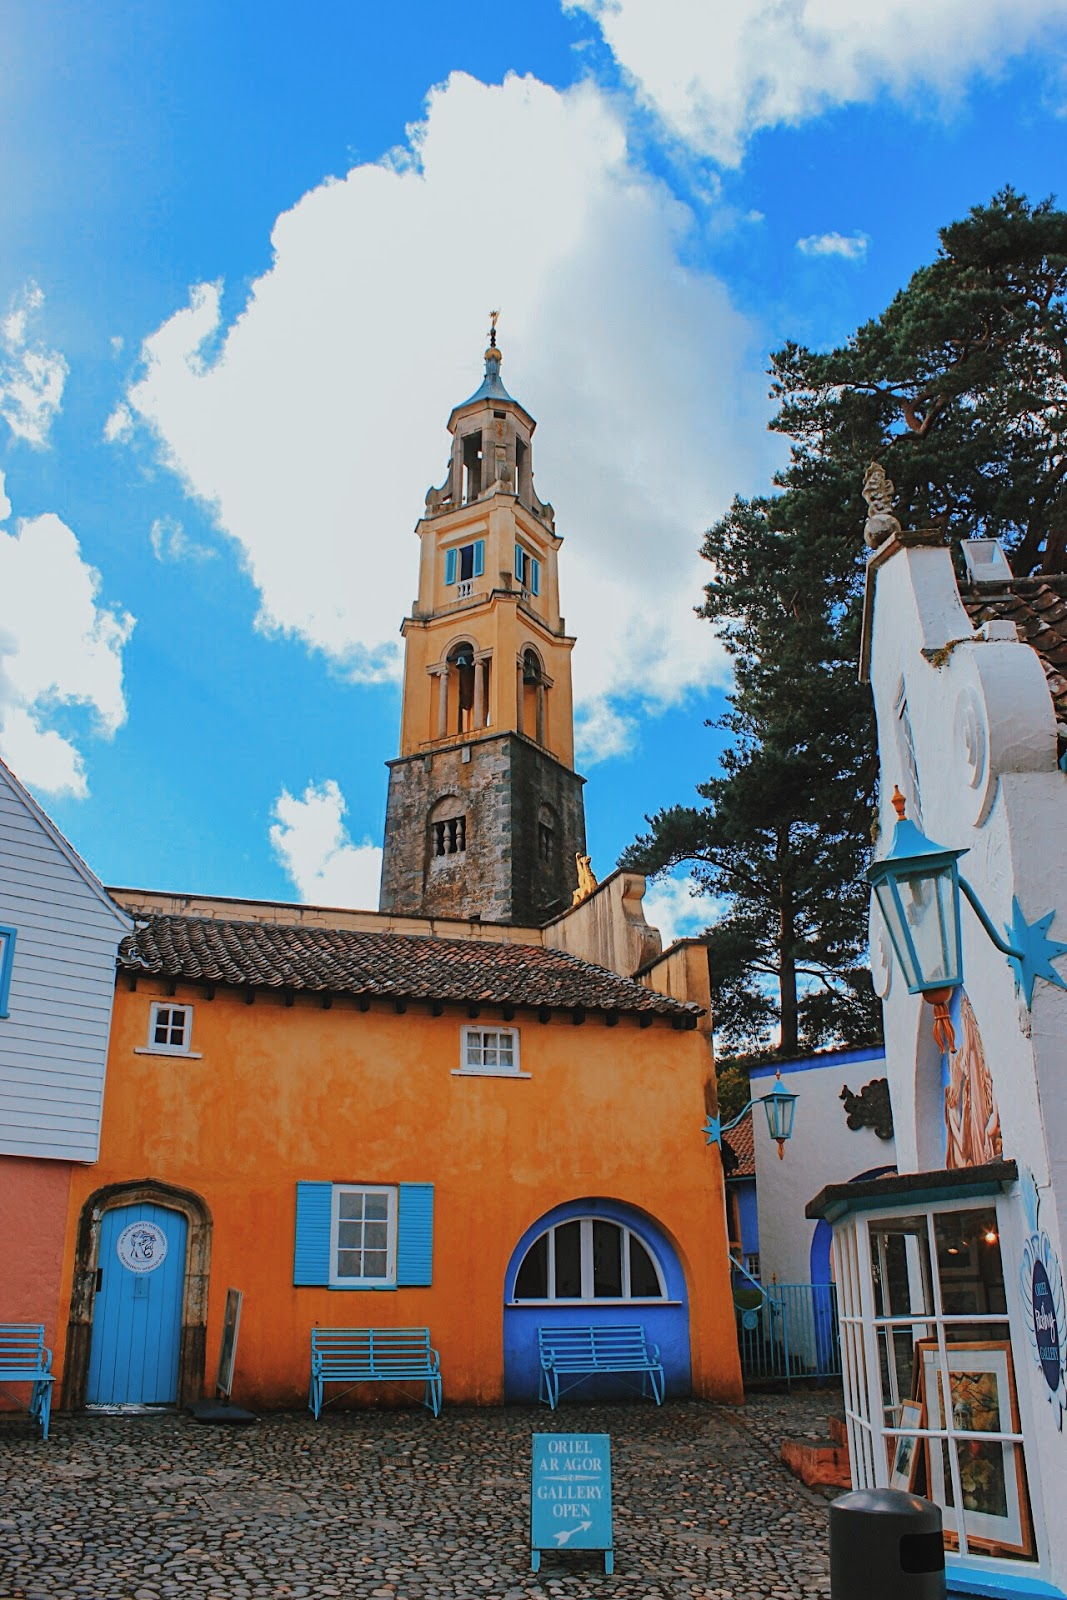 portmeirion wales, seaside places to visit uk, most beautiful village uk, must visit place uk, colourful village uk, indian blogger, london blog, uk travel blogger